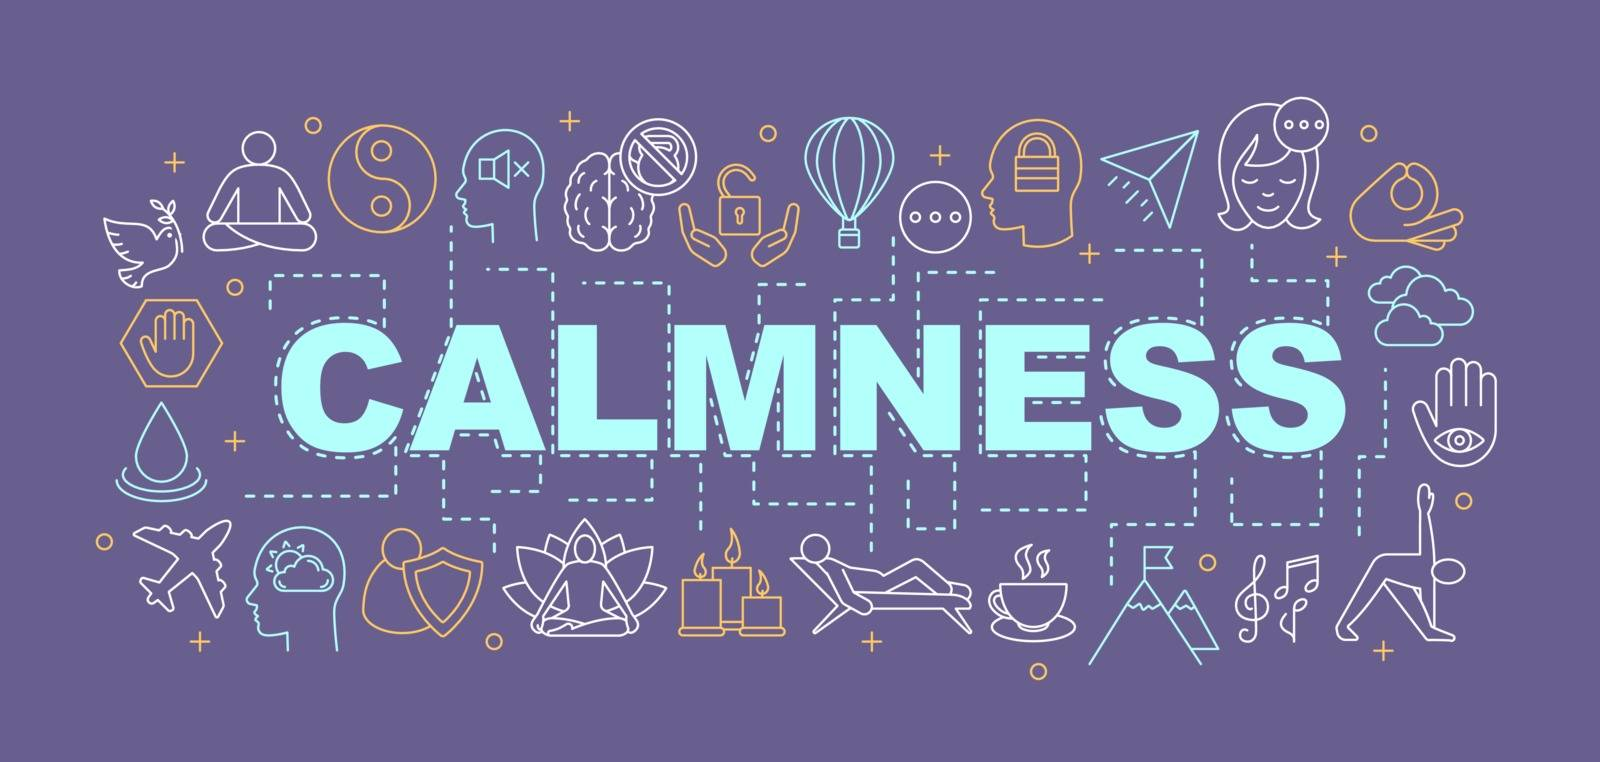 Calmness word concepts banner. Mind freedom. Wellness, peace. Mindfulness. Presentation, website. Isolated lettering typography idea with linear icons. Vector outline illustration